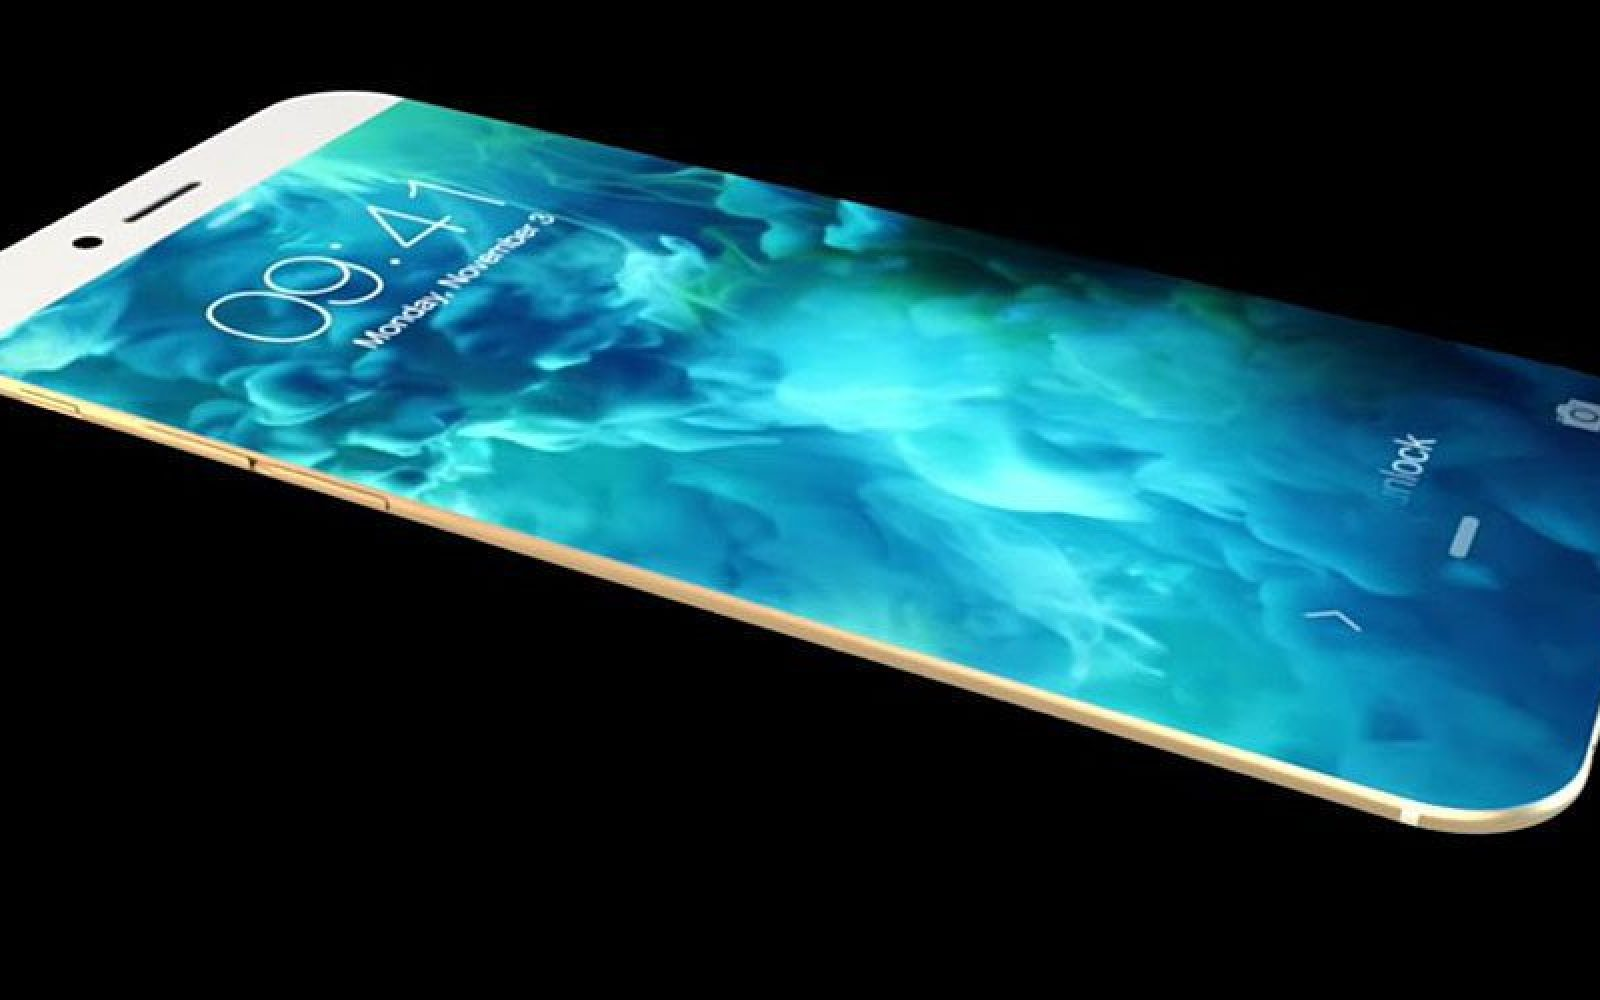 KGI: iPhone 8 will feature new 3D Touch pressure-sensitive sensor to work with flexible OLED display